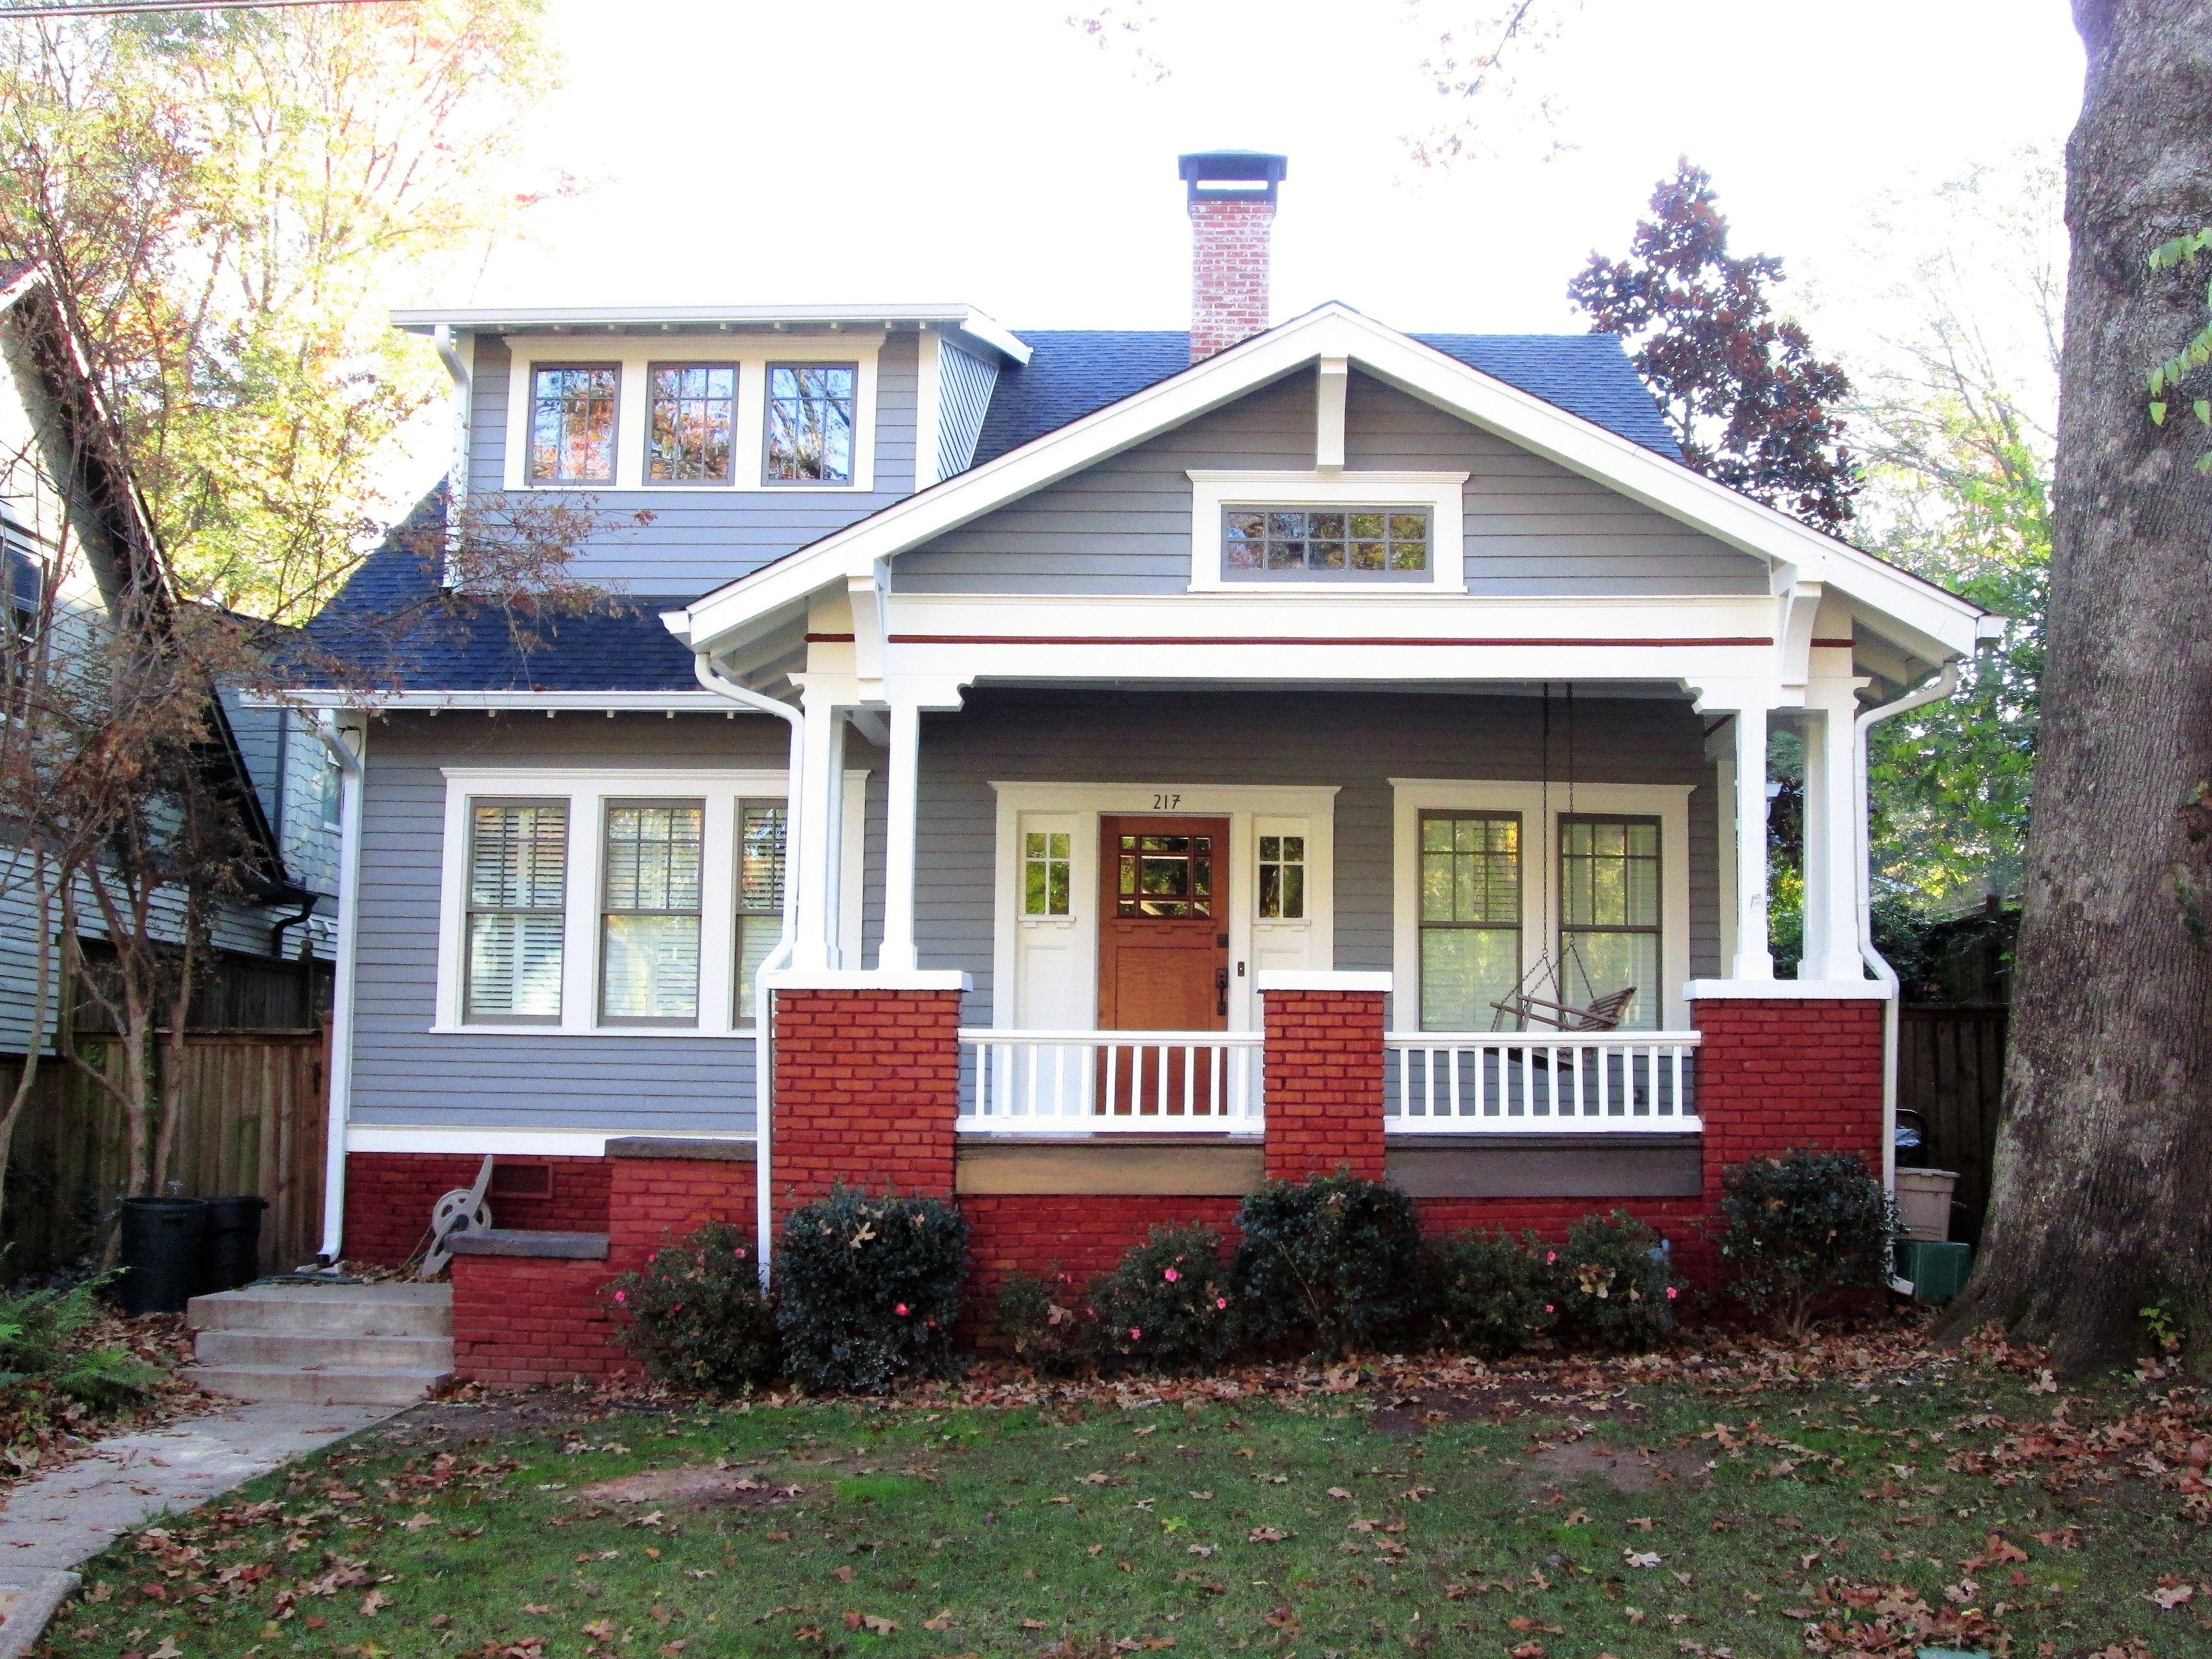 2nd floor addition by Atlanta General Contractor Penn